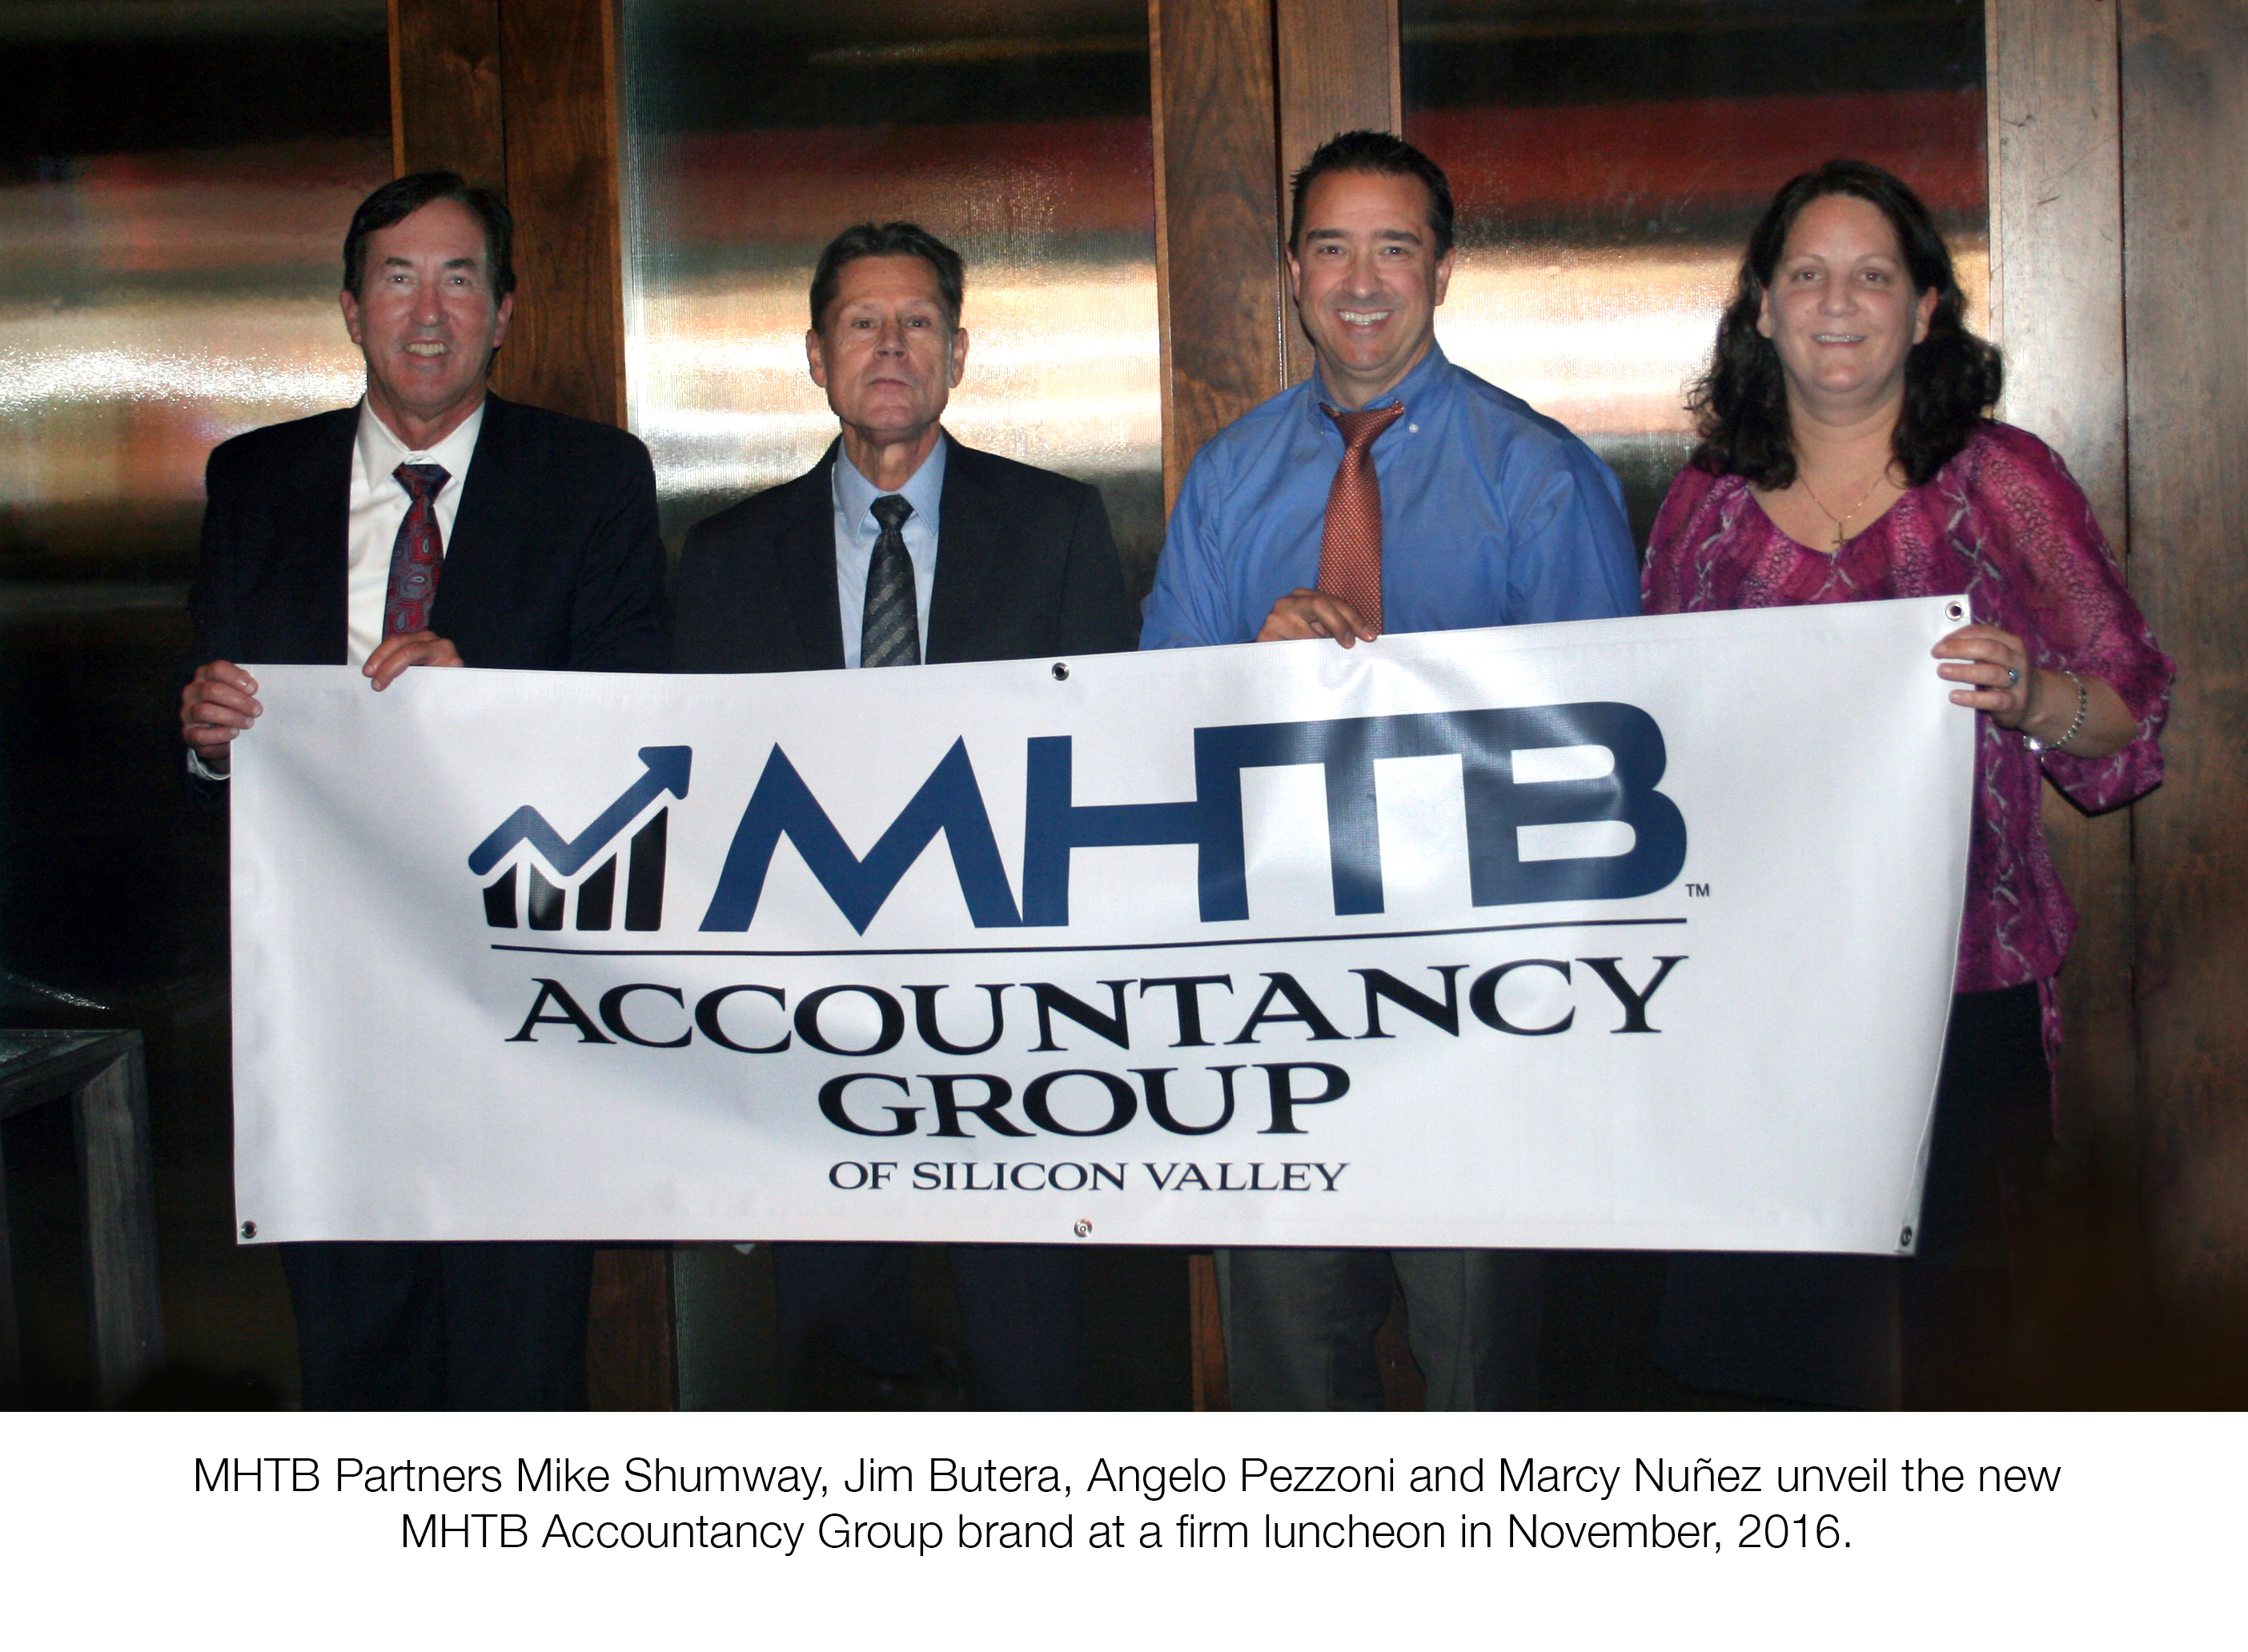 MHTB Accountancy Group Partners Mike Shumway, Jim Butera, Angelo Pezzoni & Marcy Nuñes Display Their New Brand